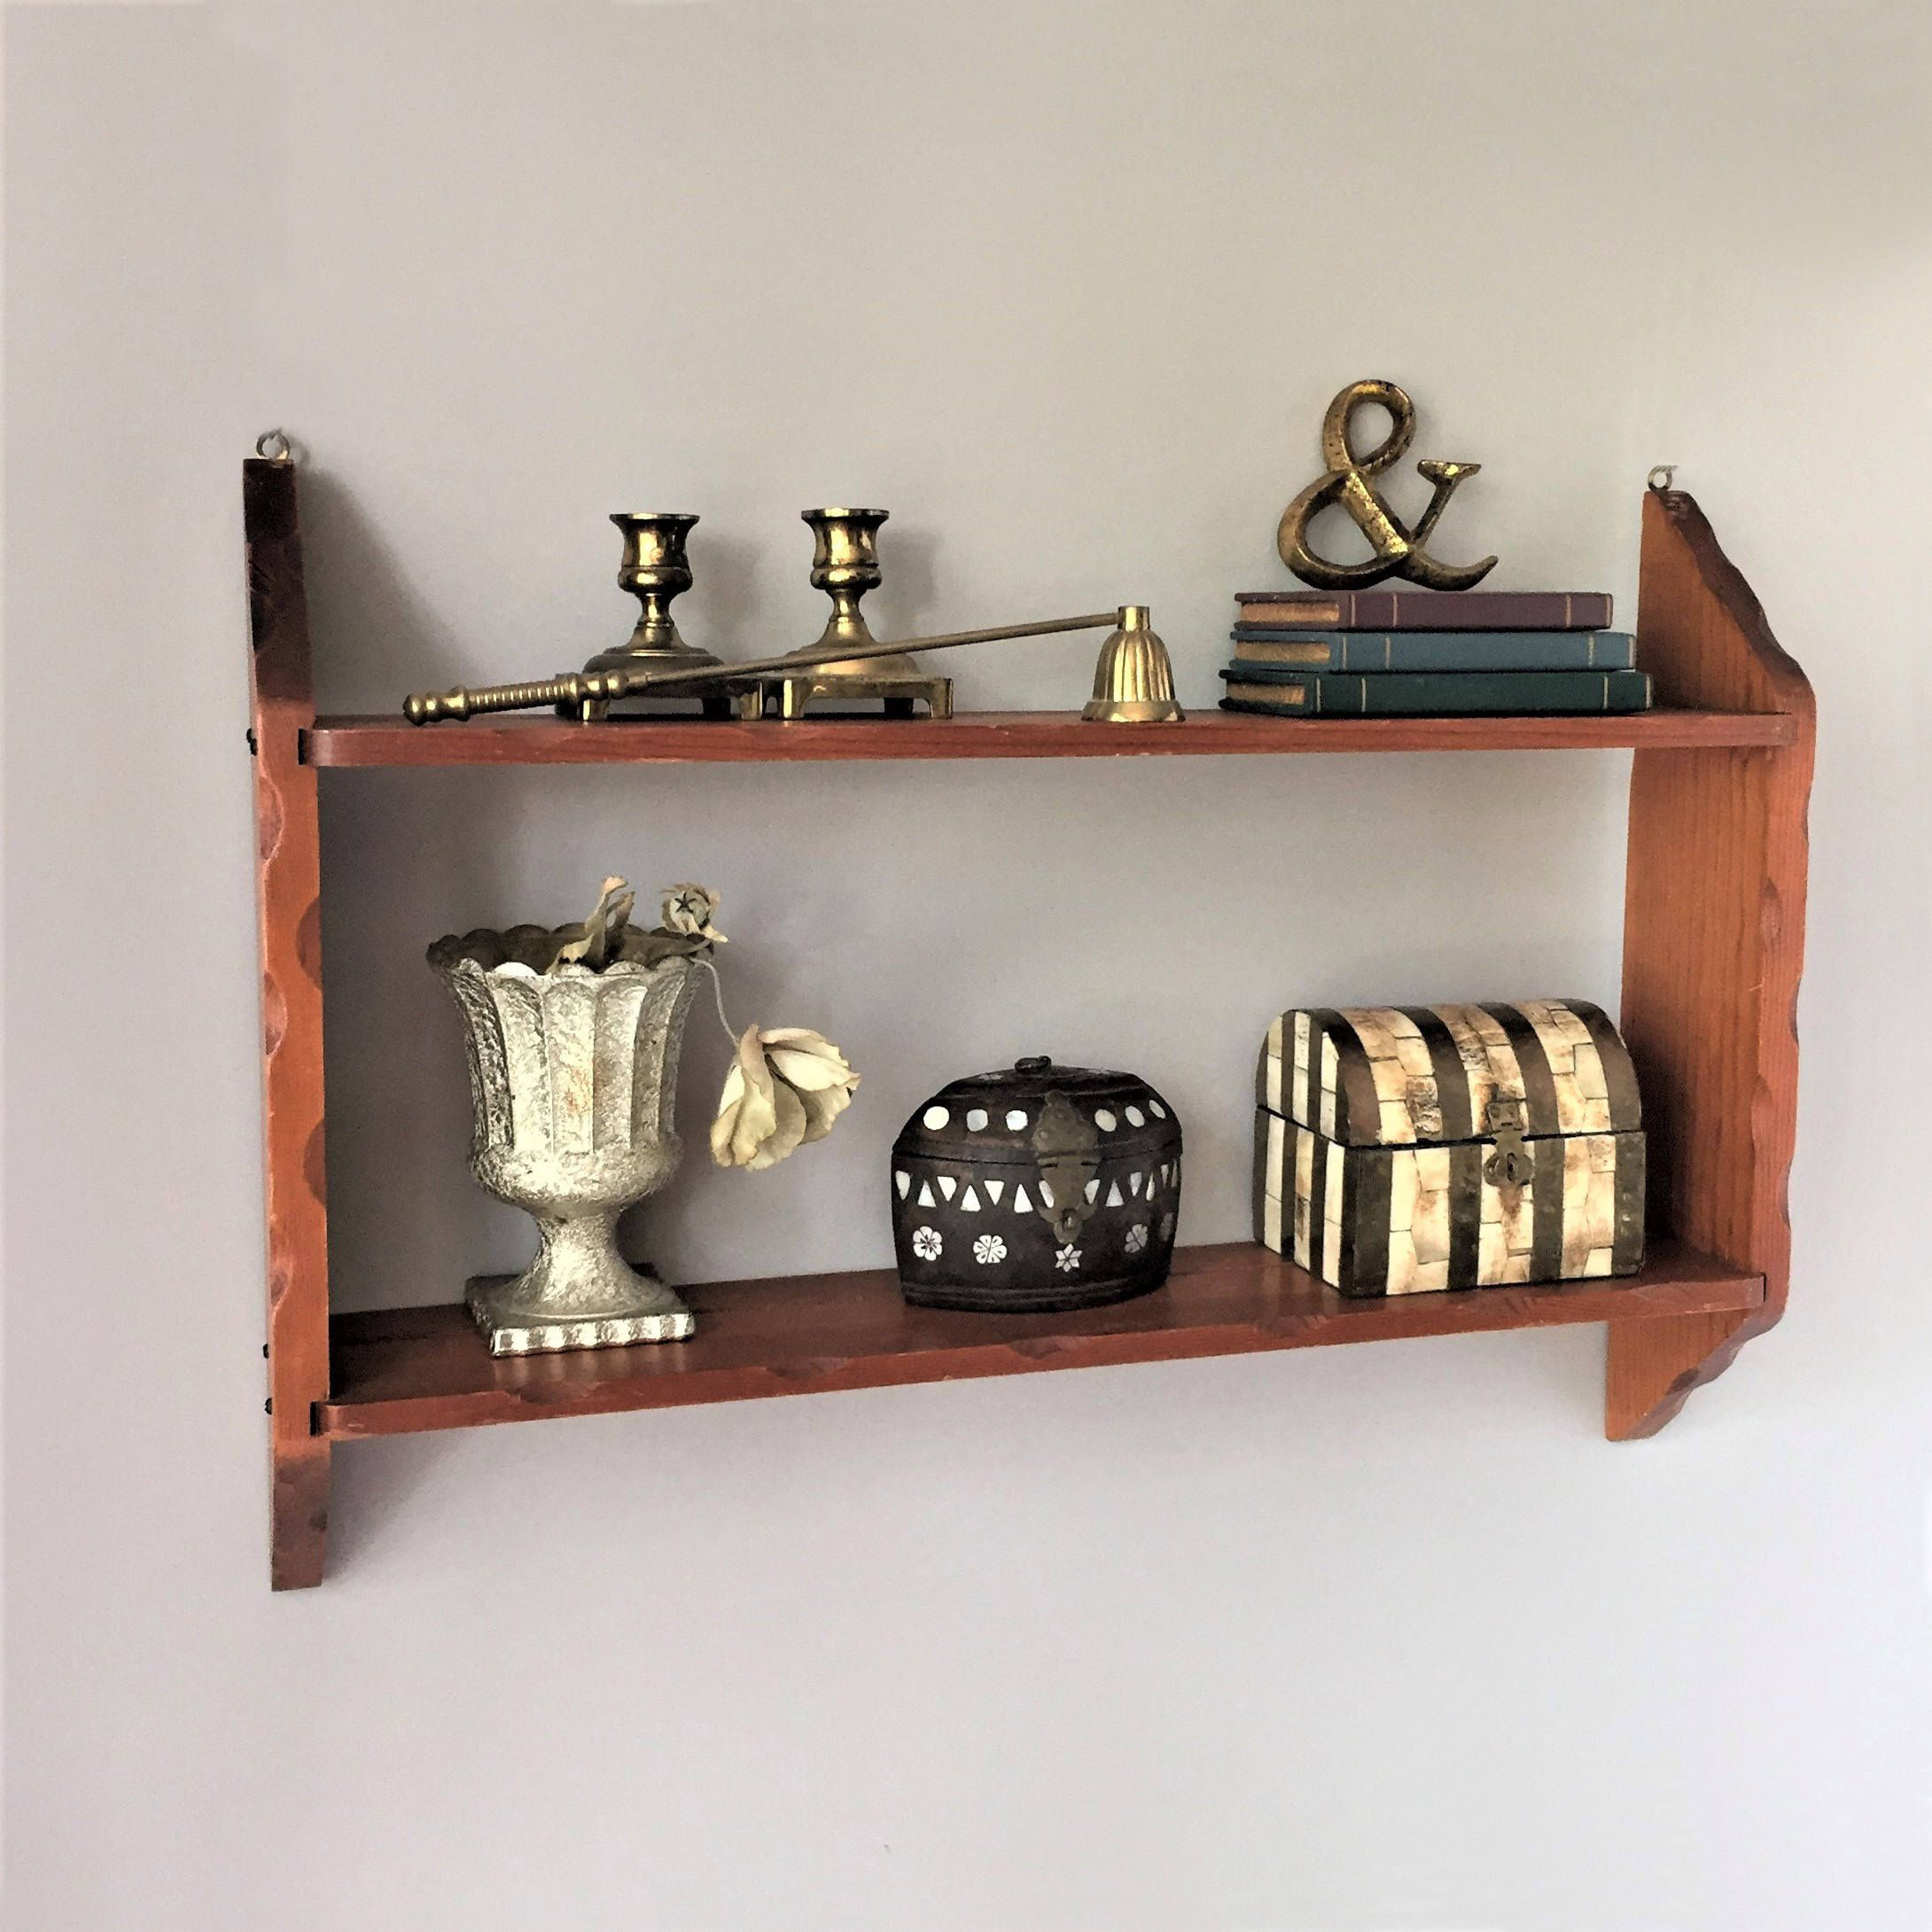 Plate Shelf Vintage Kitchen Shelf Wooden Display Shelf China